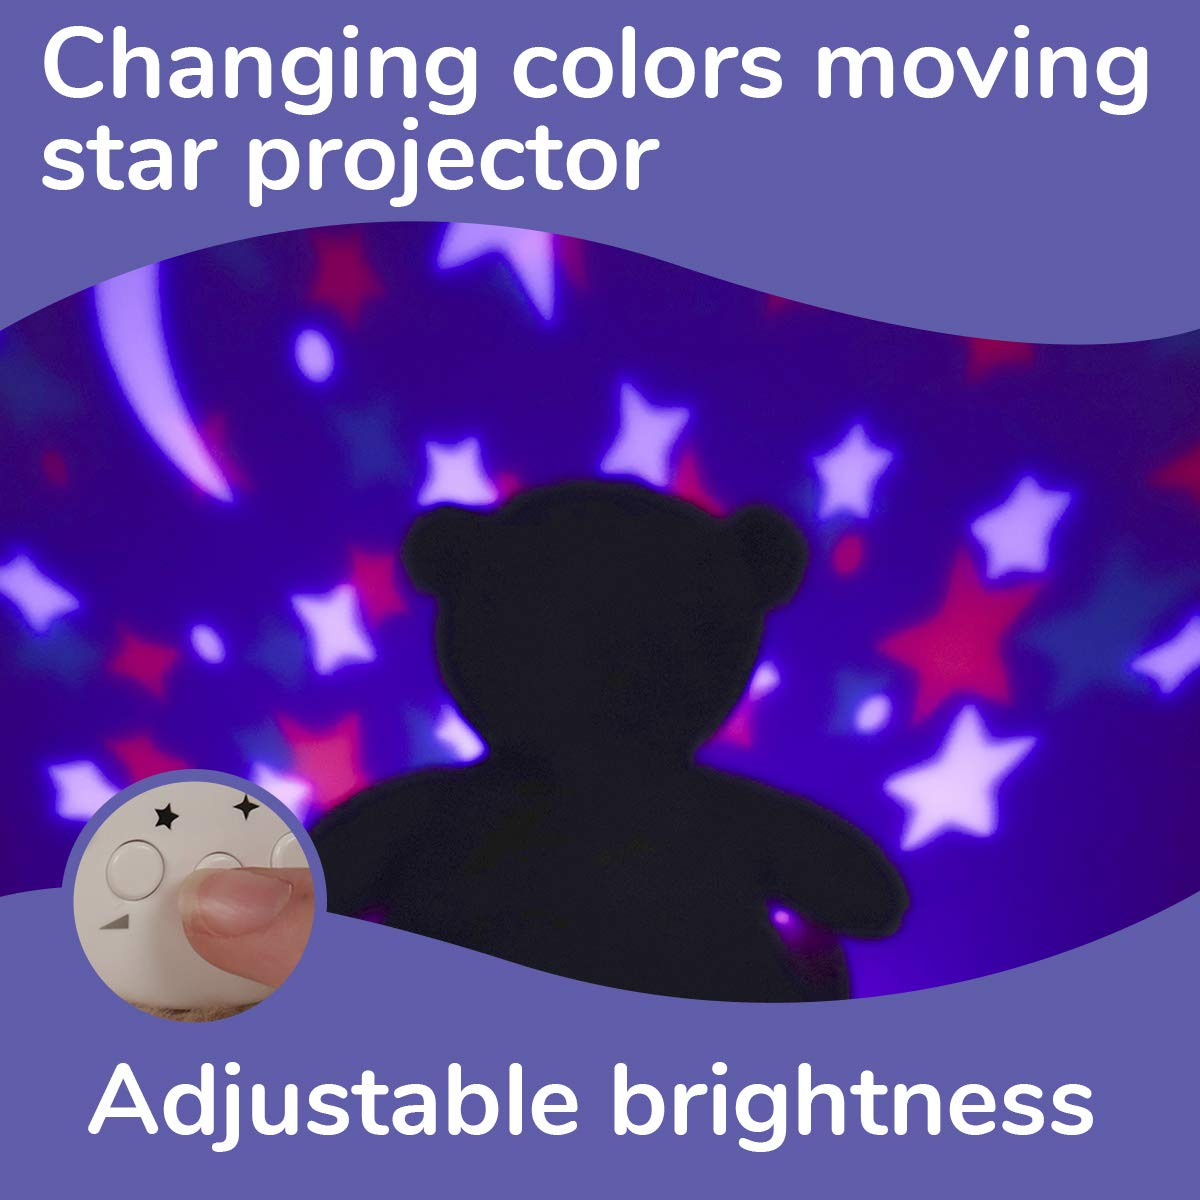 Star Projector 2019 Best Gift Registry for Baby Shower Crib Sleeping /& Calming Aid Cry Sensor Rechargeable White Noise /& Lullabies Sound Machine InfantBay Cozzy Bear Baby Sleep Soother